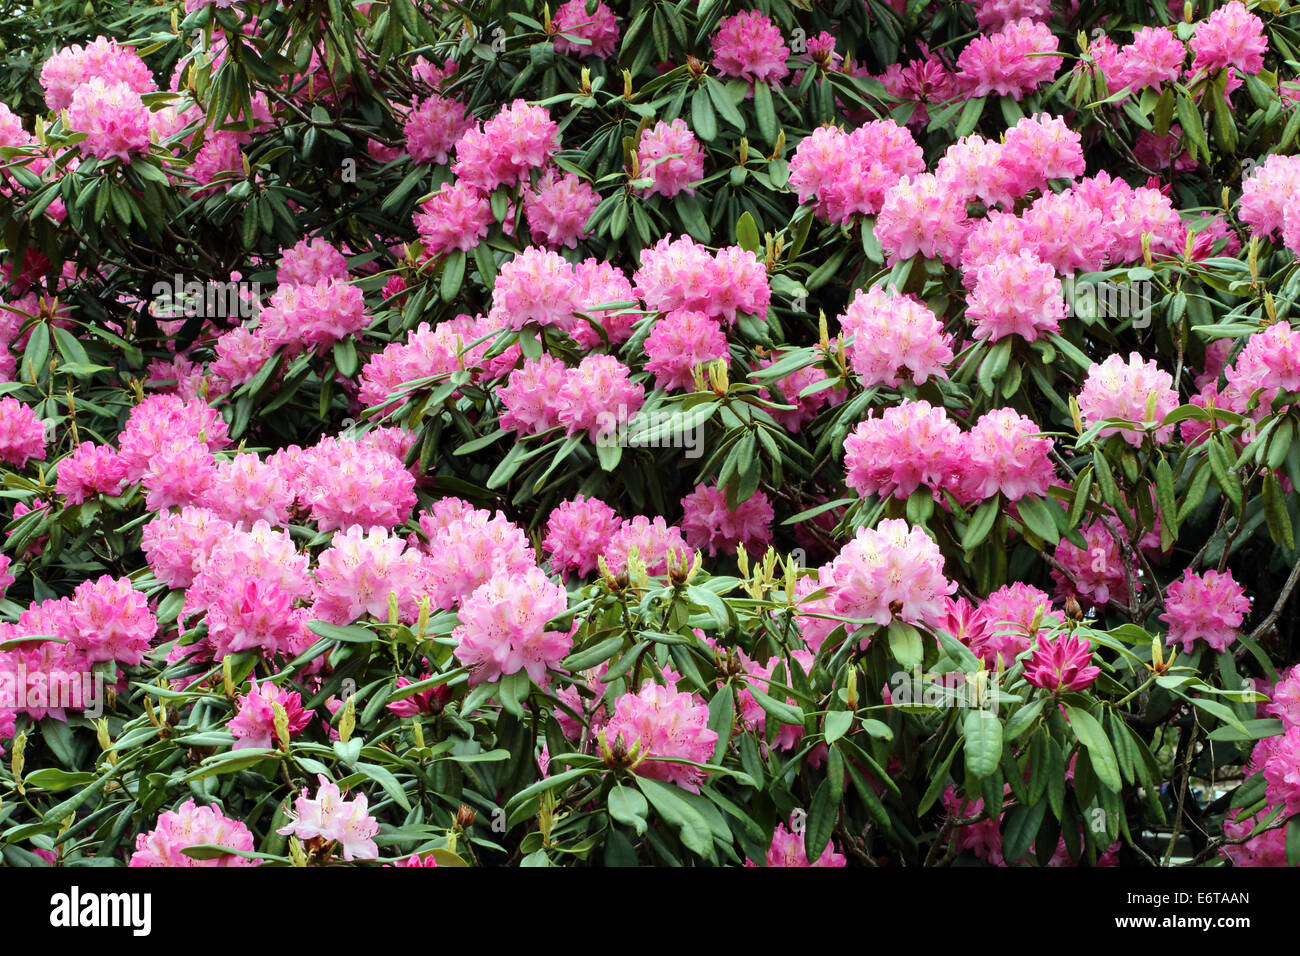 Rhododendron pink blooms flowers - Stock Image